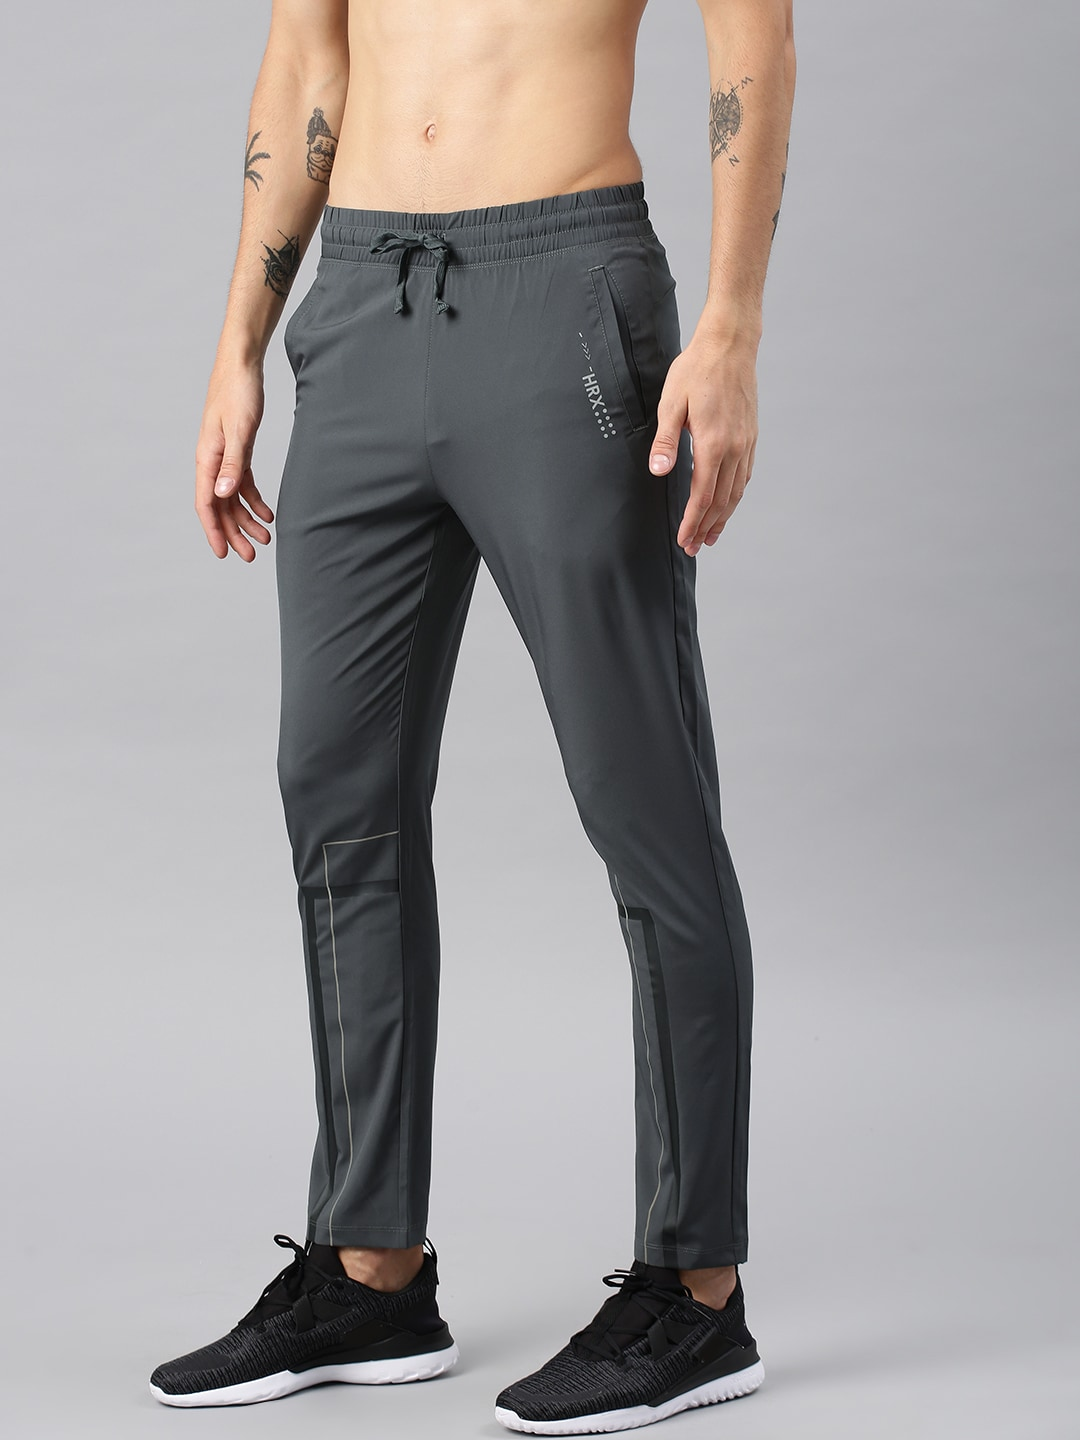 f5171b47edf1 Track Pants - Buy Track Pant Online in India at Myntra